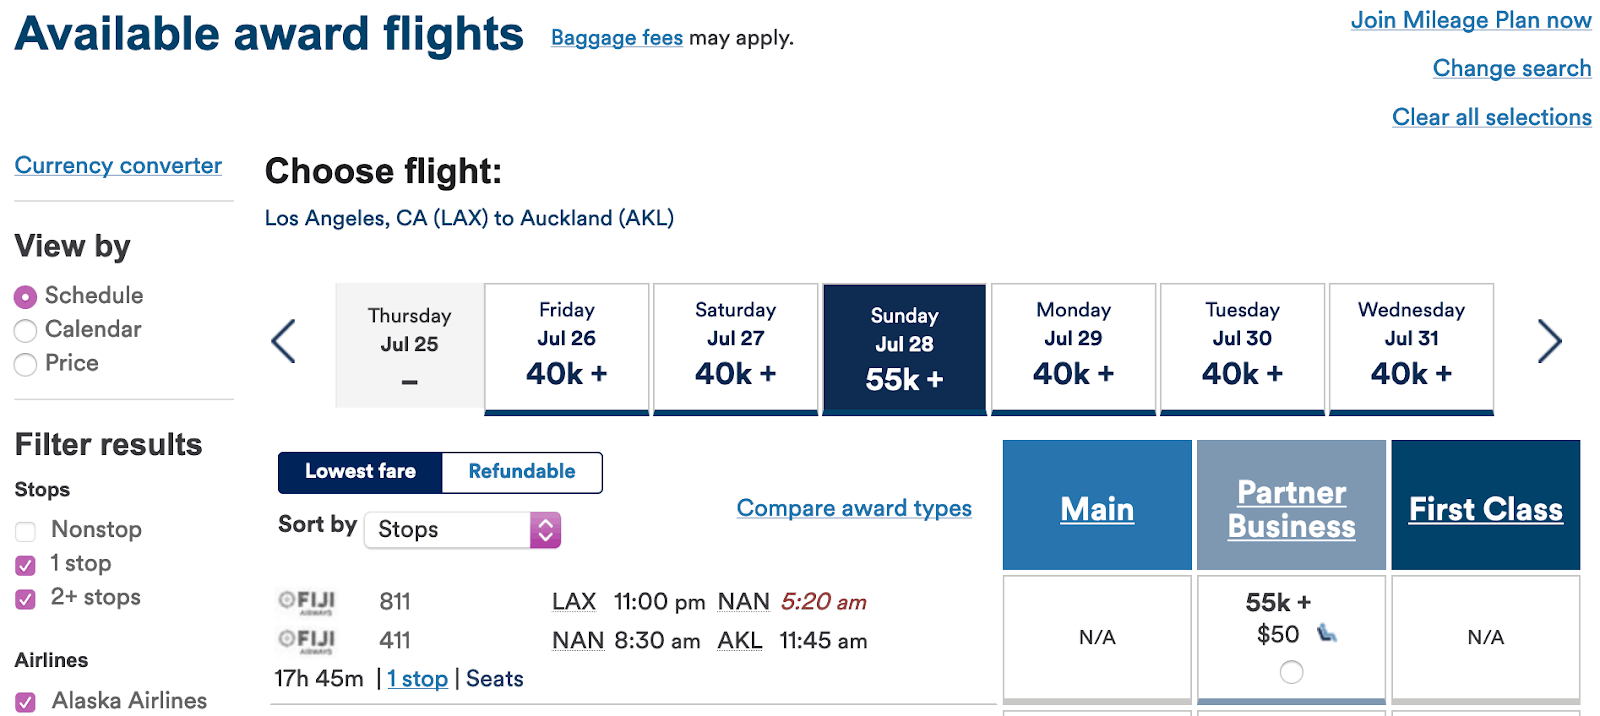 How to book Fiji Airways flights with Alaska Airlines Mileage Plan miles